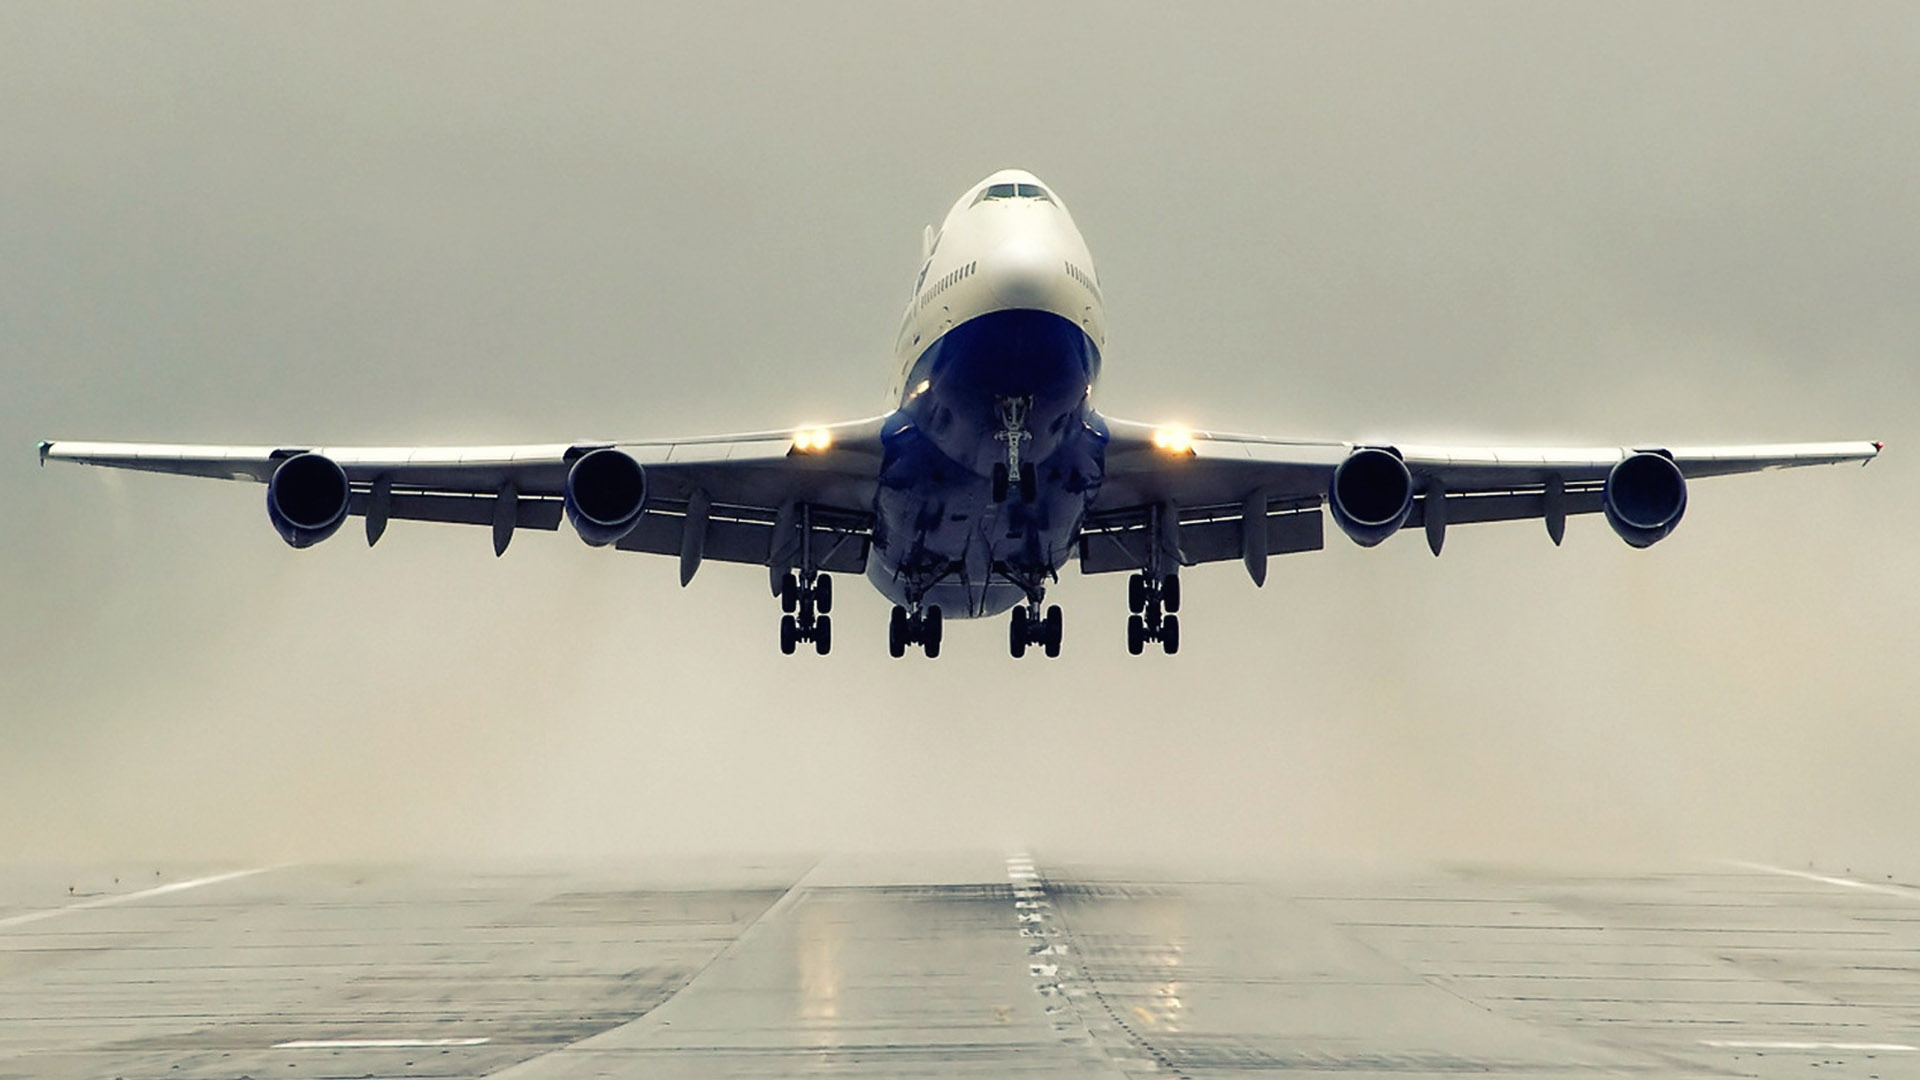 boeing aircraft take off mystery wallpaper. Black Bedroom Furniture Sets. Home Design Ideas